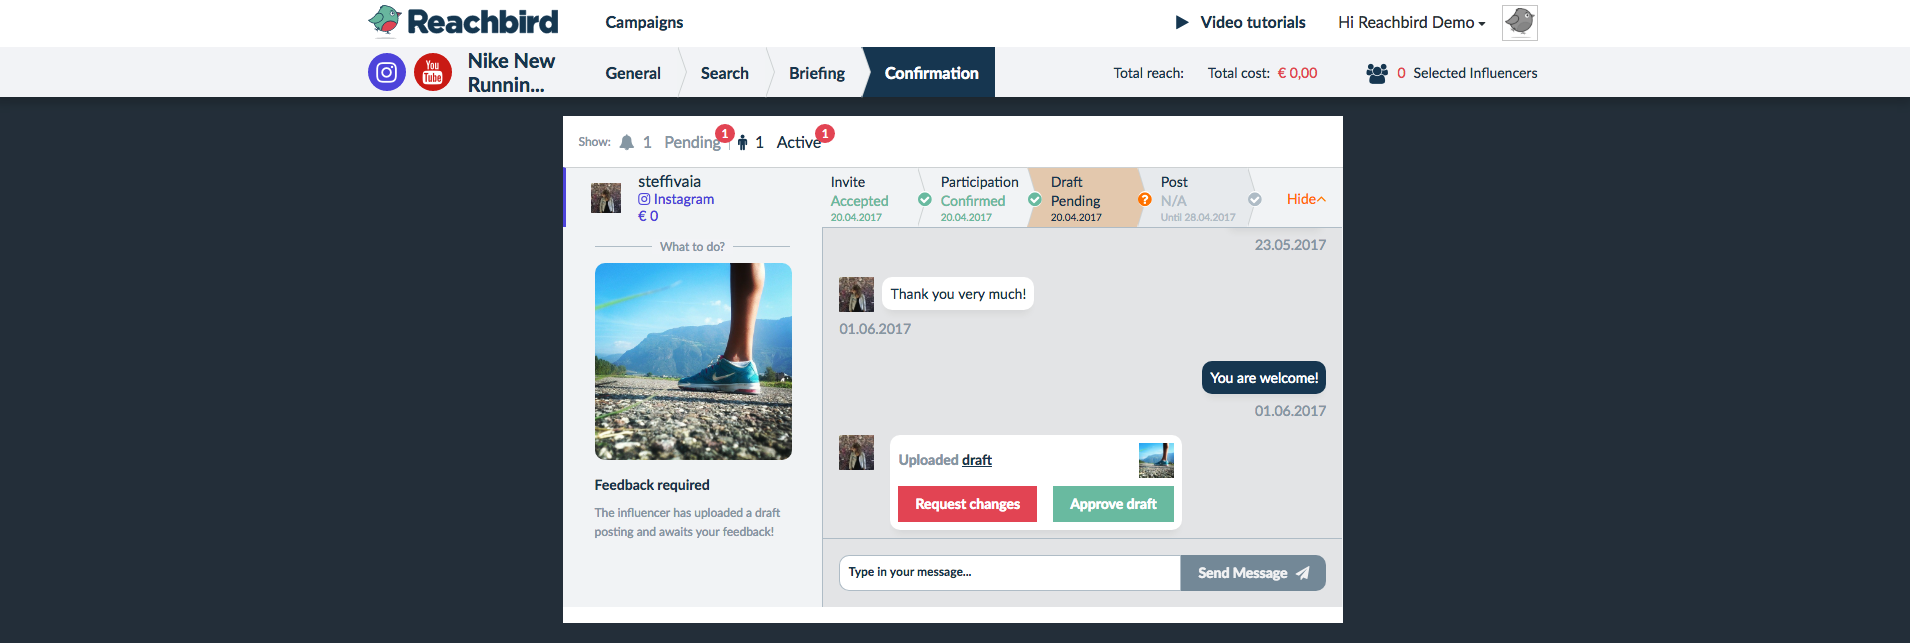 Reachbird Demo - Influencer Chat & Campaign Manager